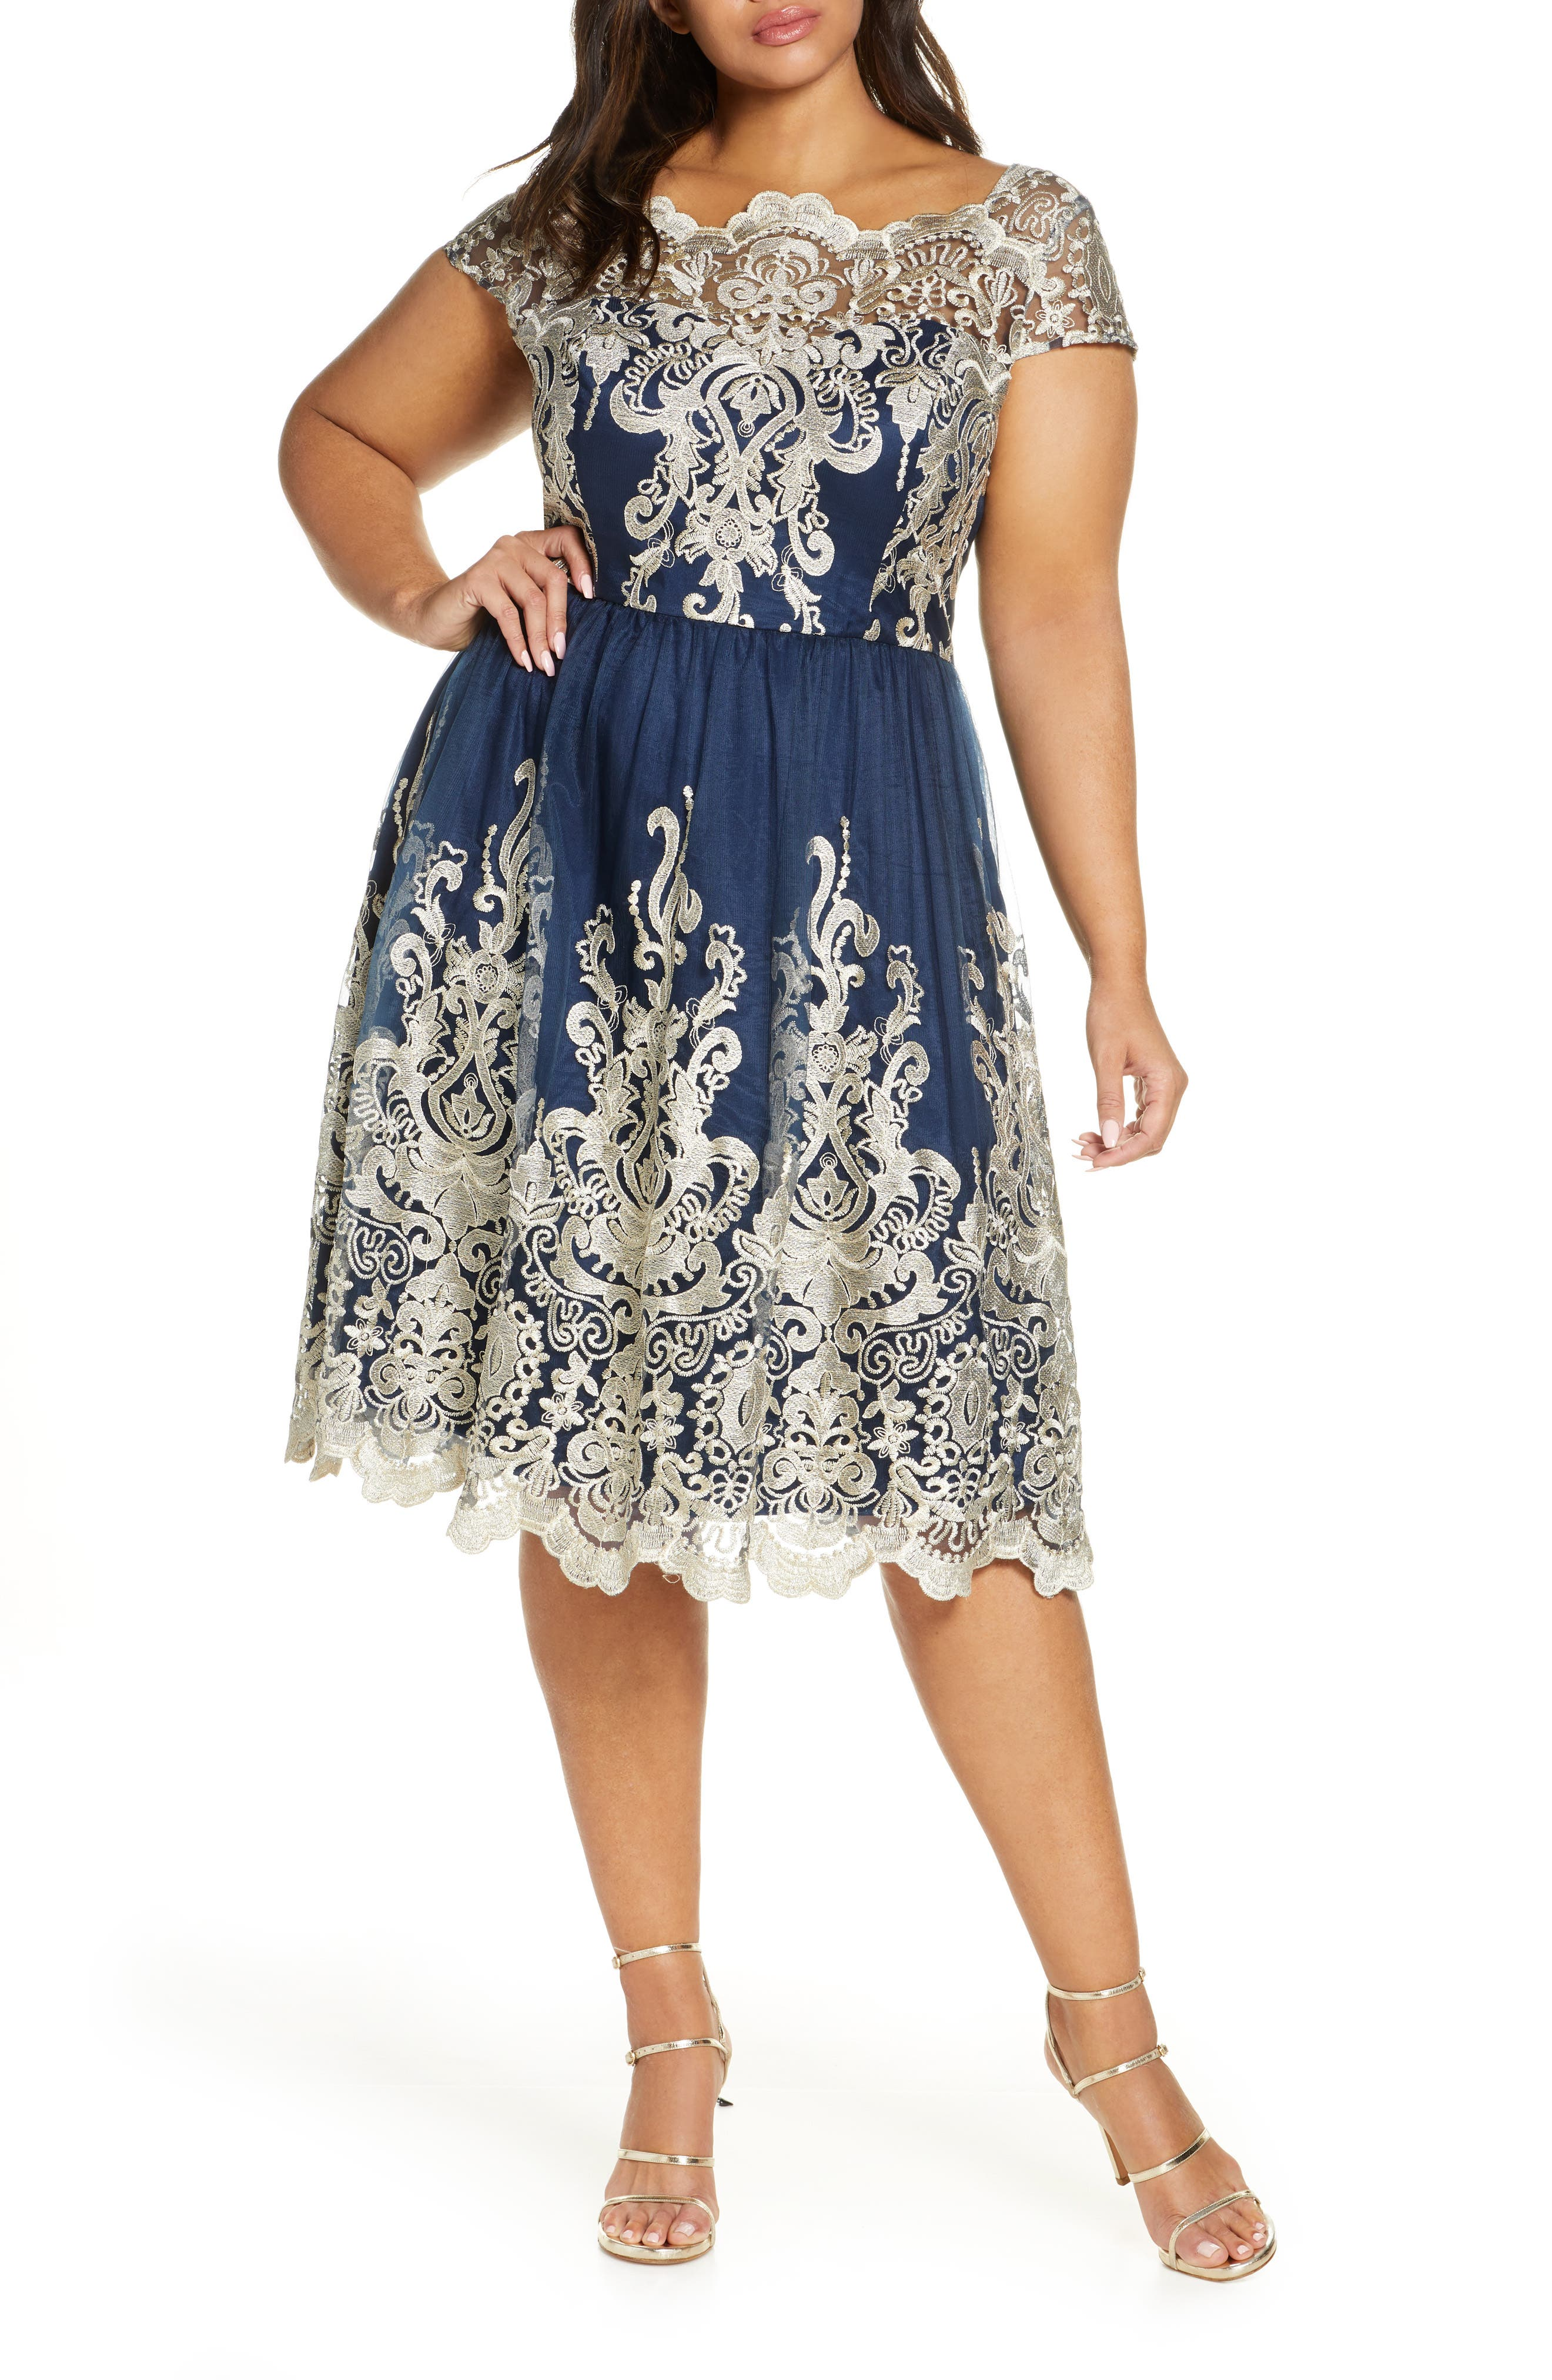 1950s Plus Size Dresses, Swing Dresses Plus Size Womens Chi Chi London Yazzy Embroidered Mesh A-Line Dress $130.00 AT vintagedancer.com